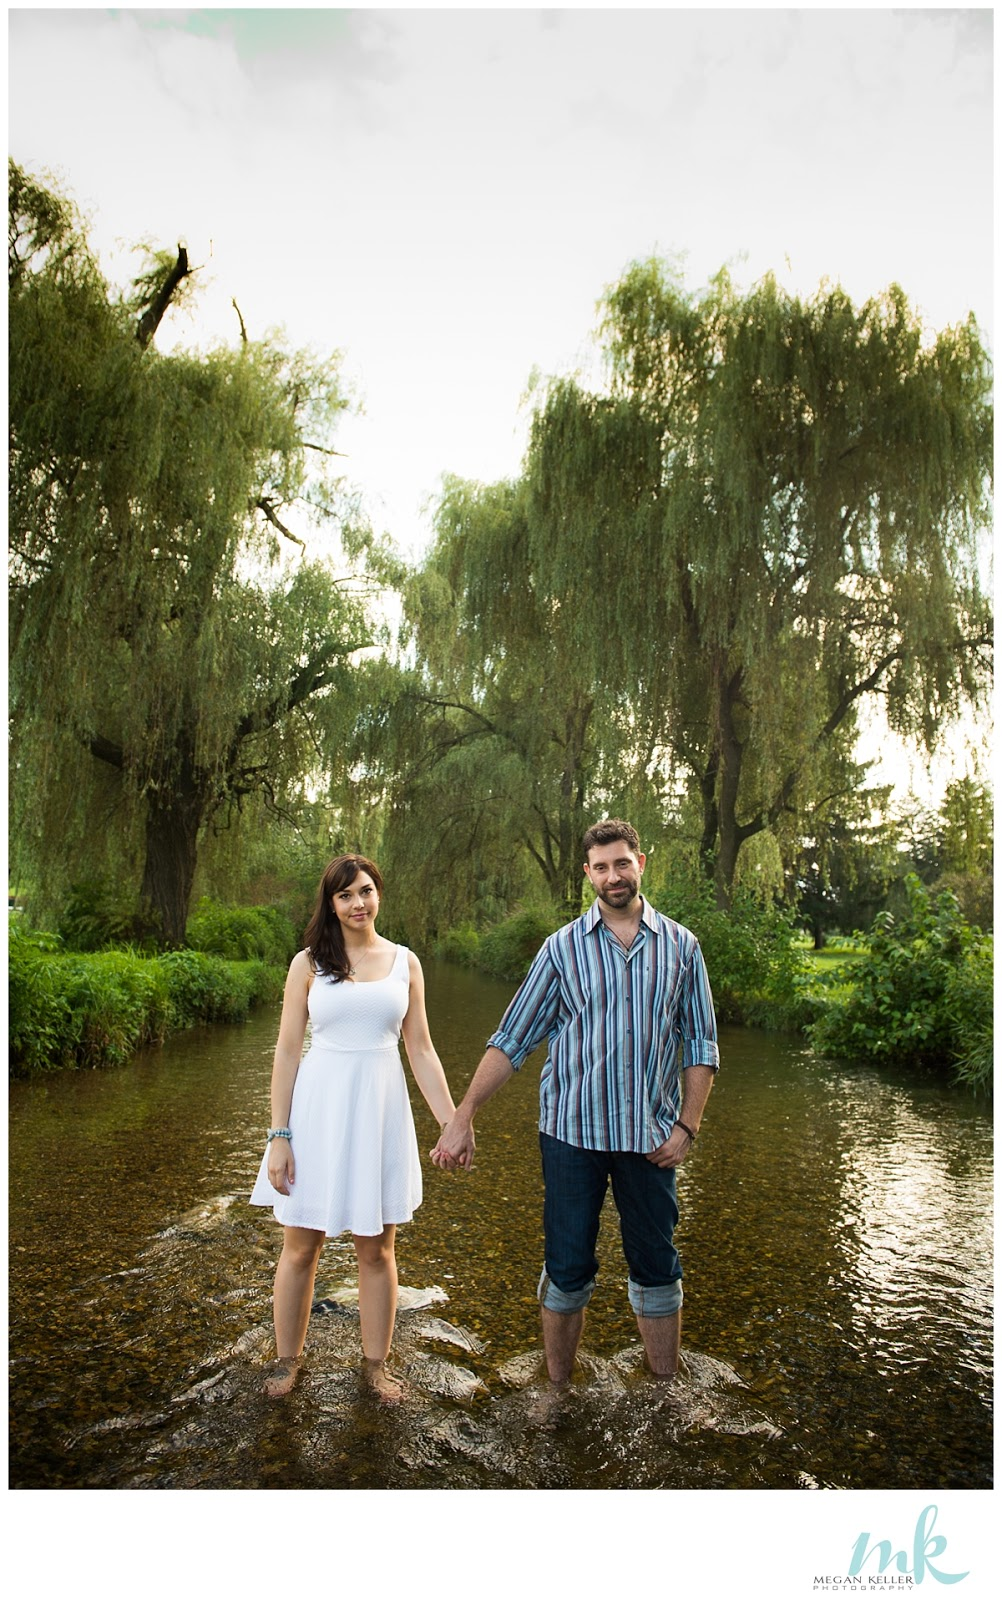 Lauren and Patrick Engagement Session Lauren and Patrick Engagement Session 2014 08 02 0021